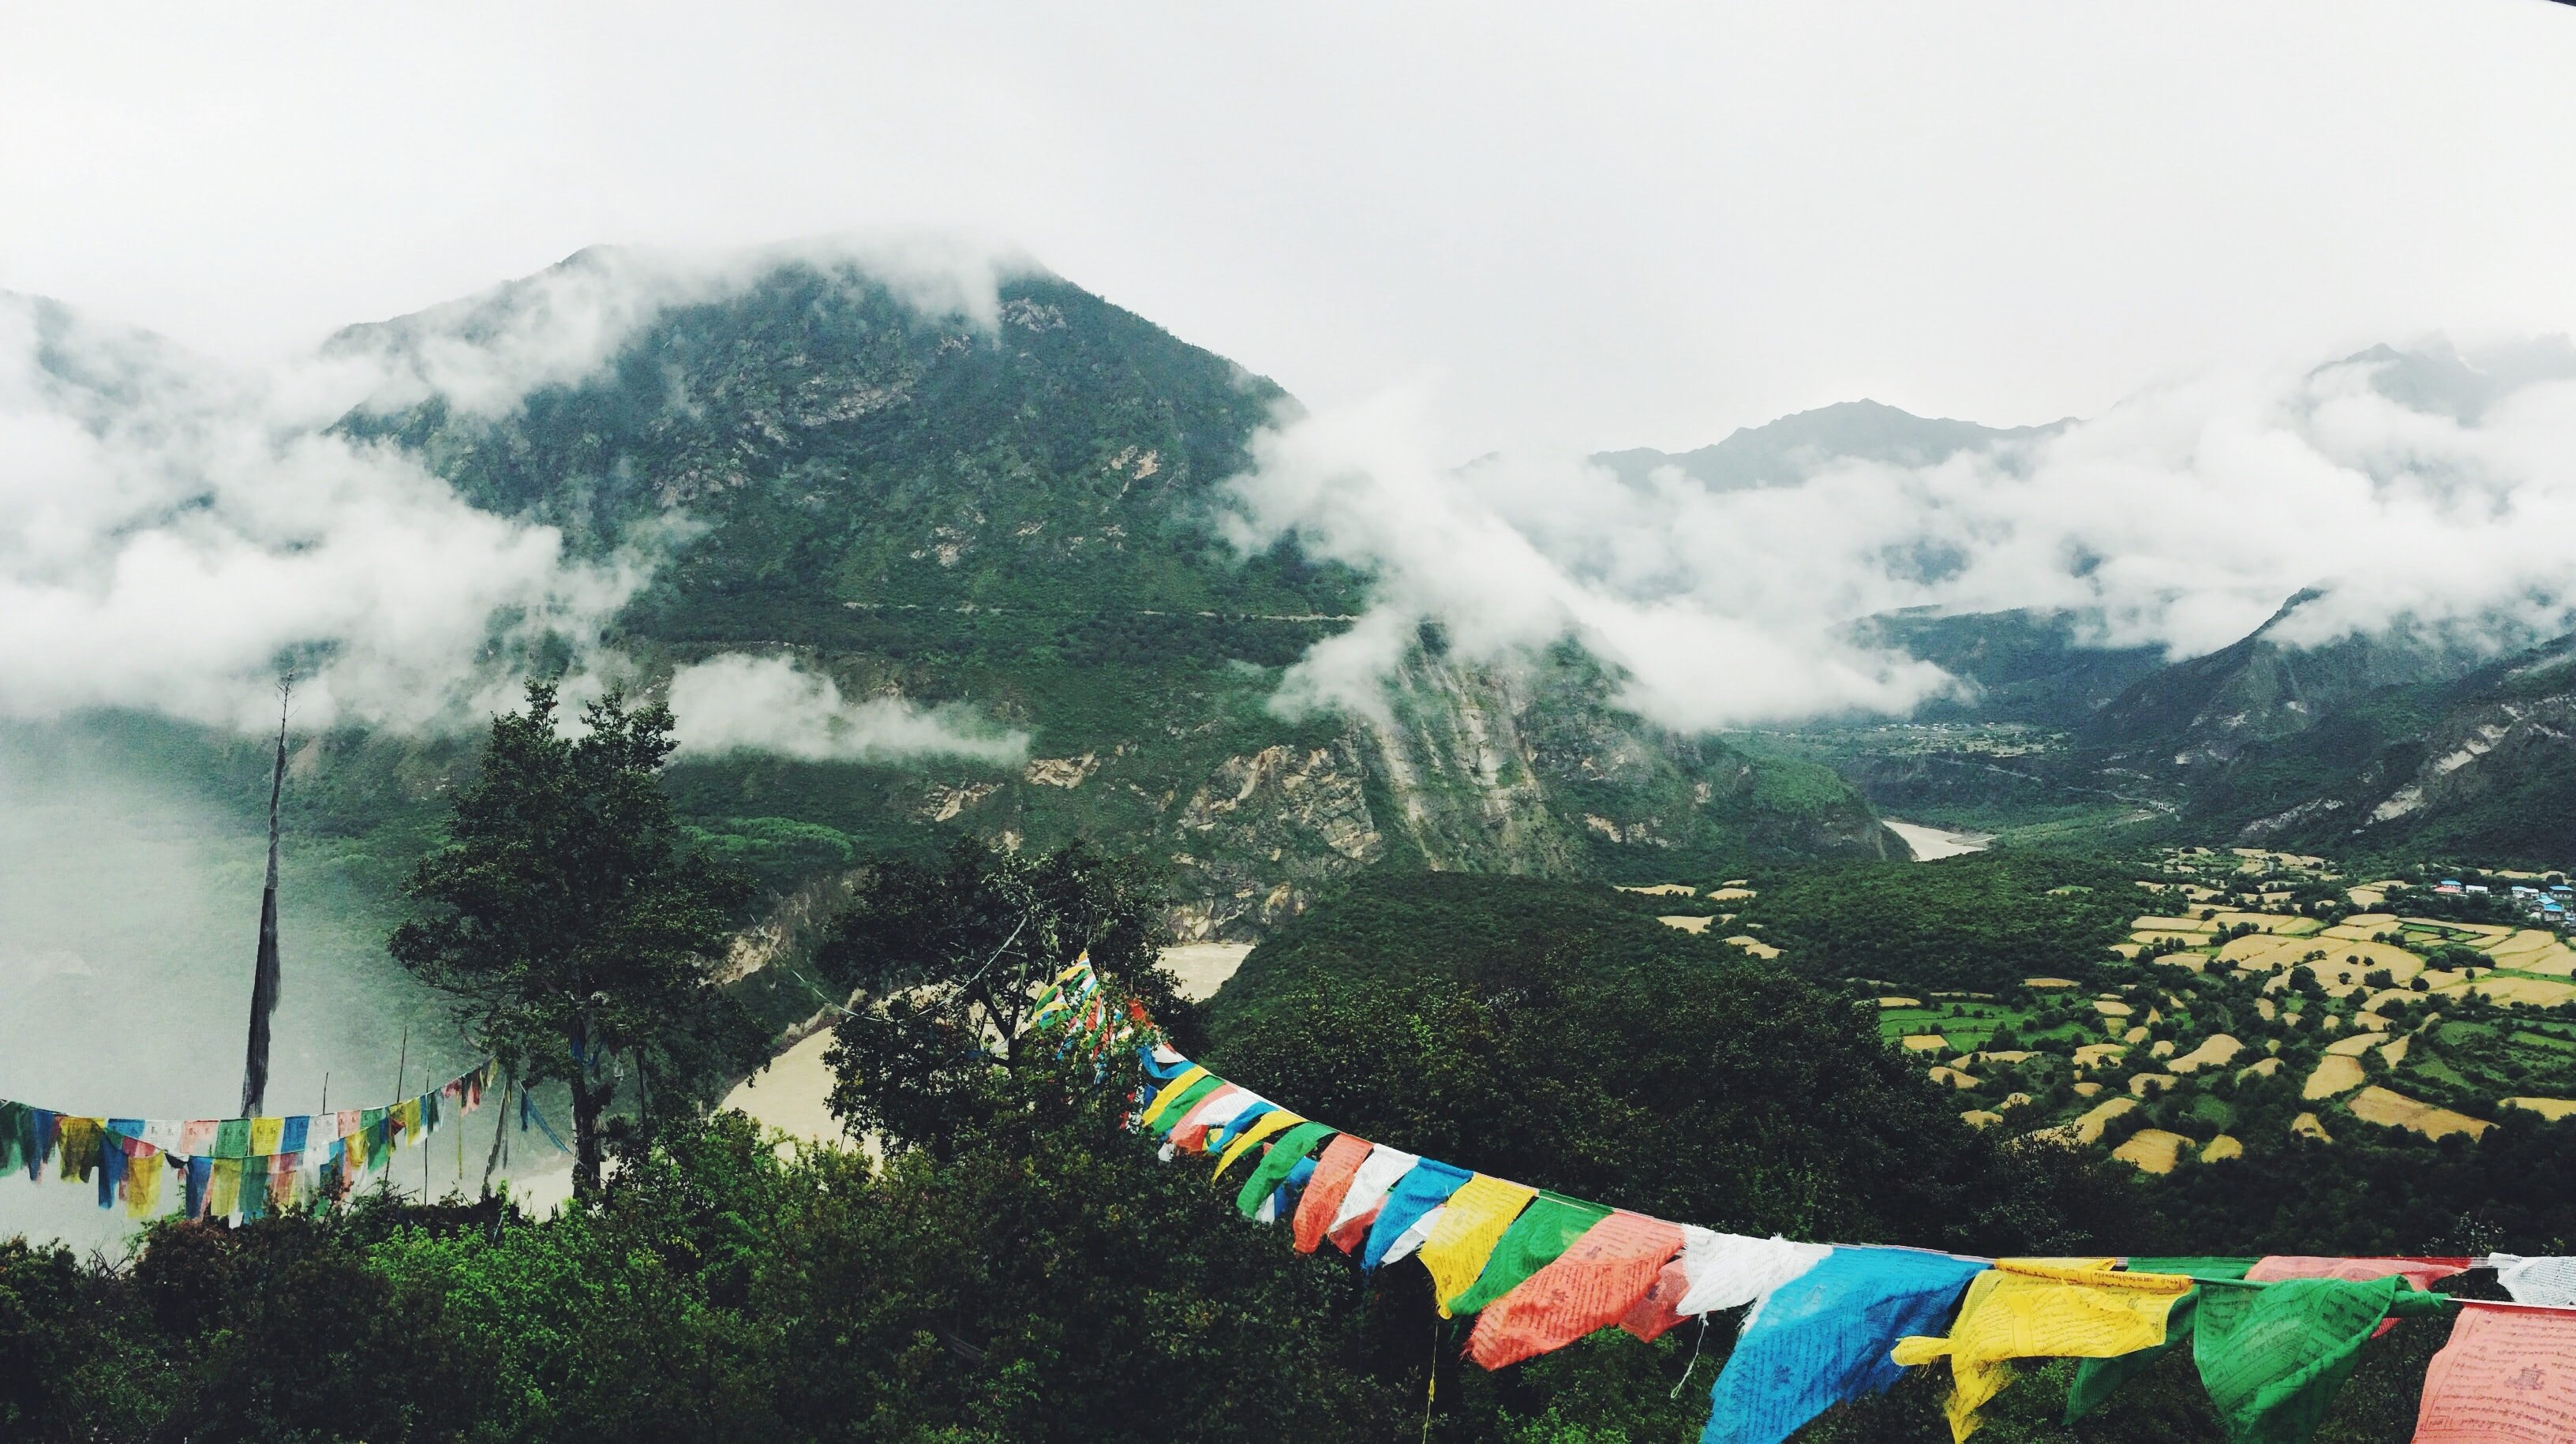 Colorful bunting hanging between treetops with view on a cloud-shrouded mountain